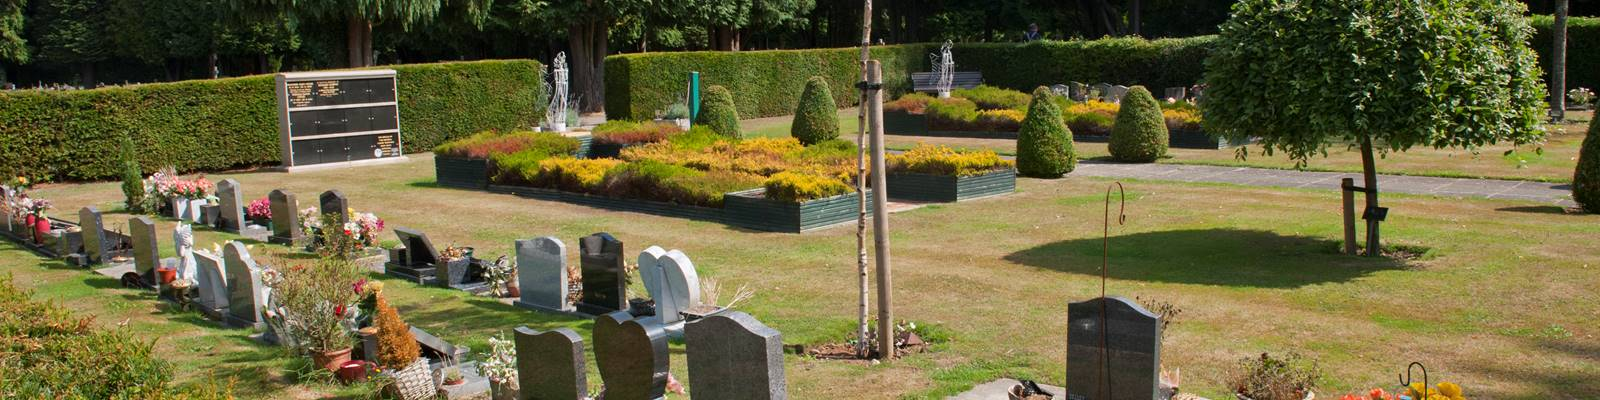 Eastleigh_Brookwood_Cemetery14.jpg